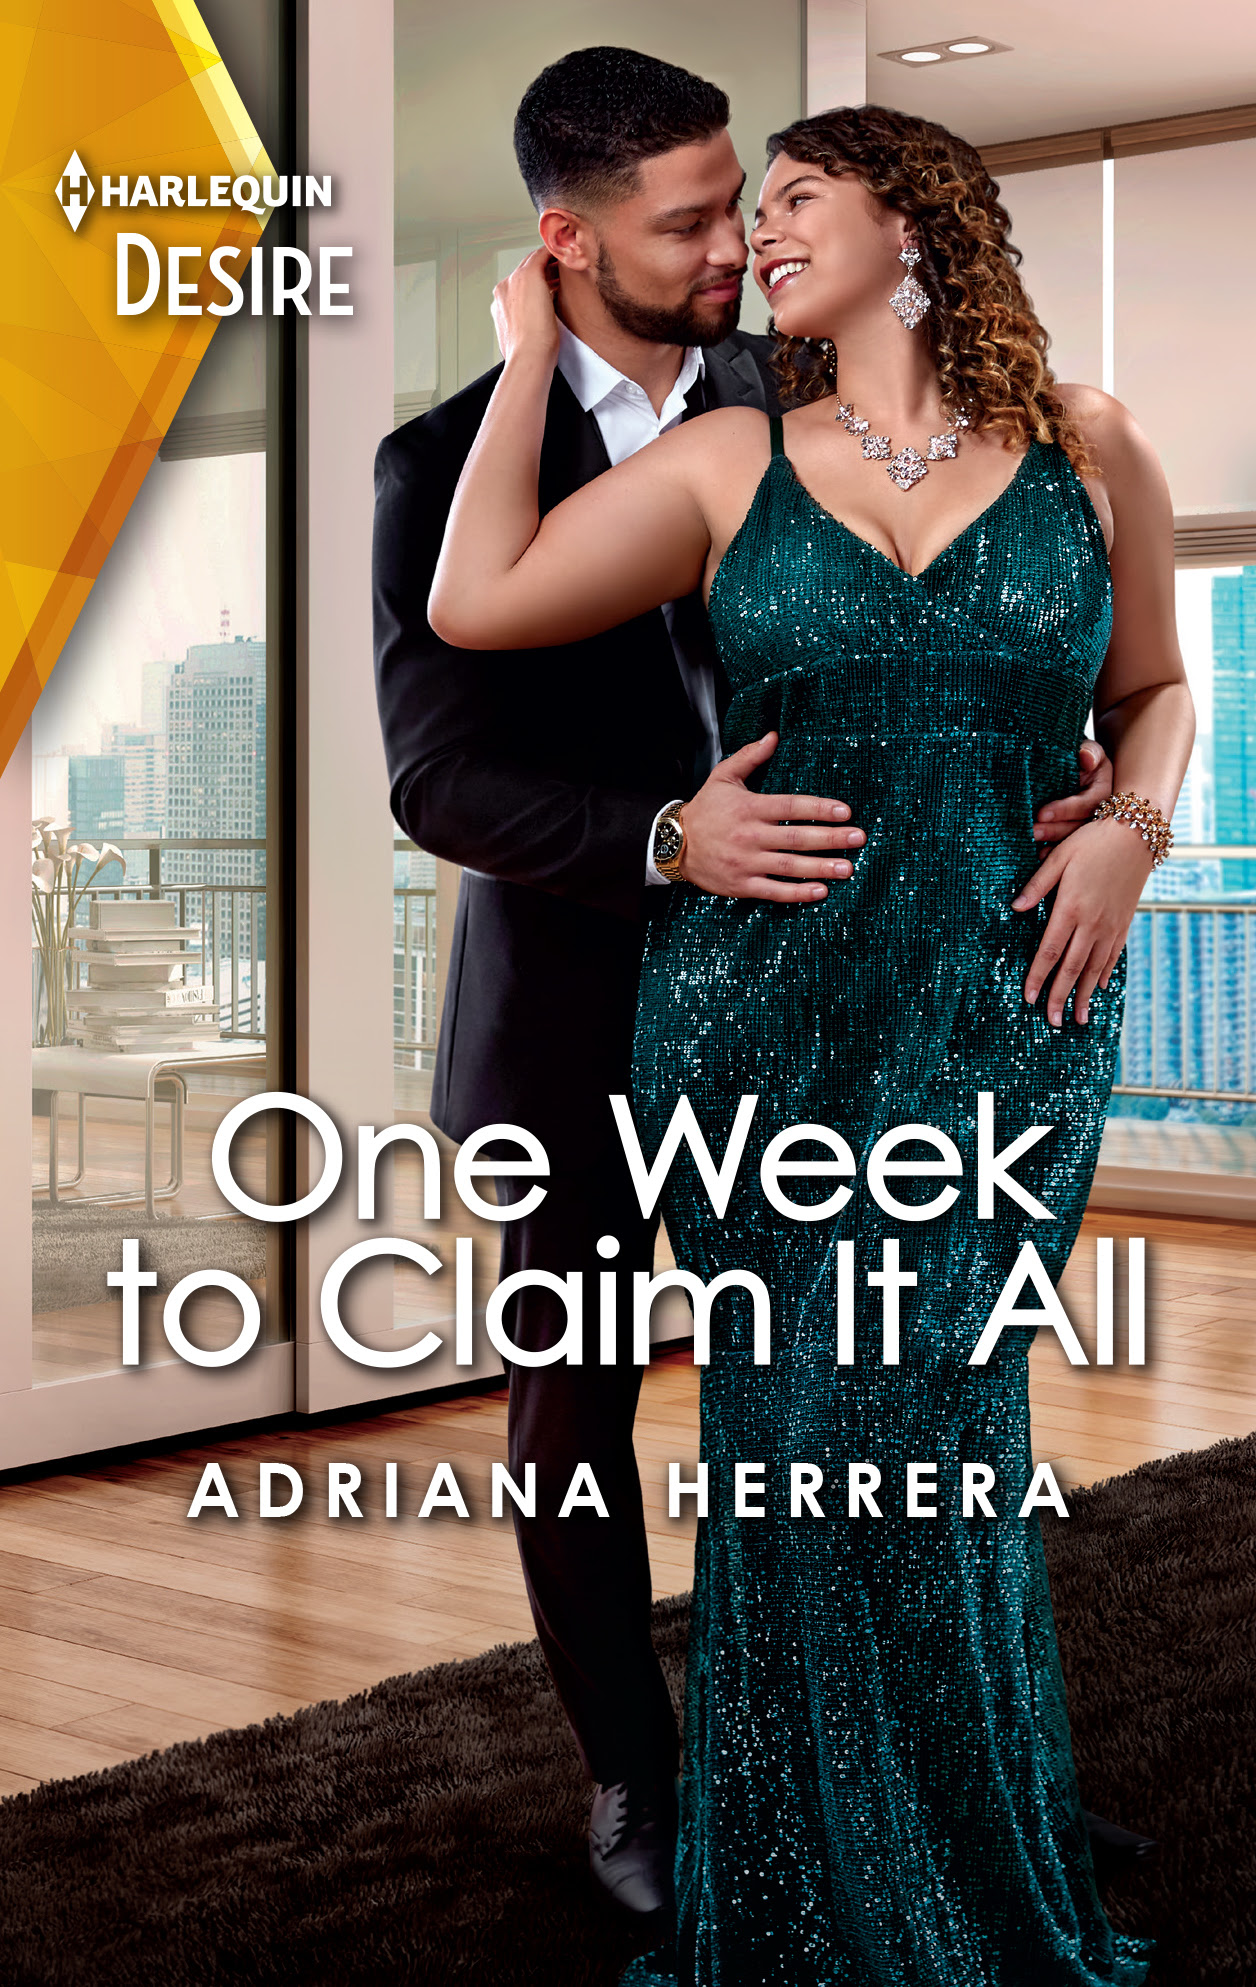 One Week To Claim it All by Adriana Herrera